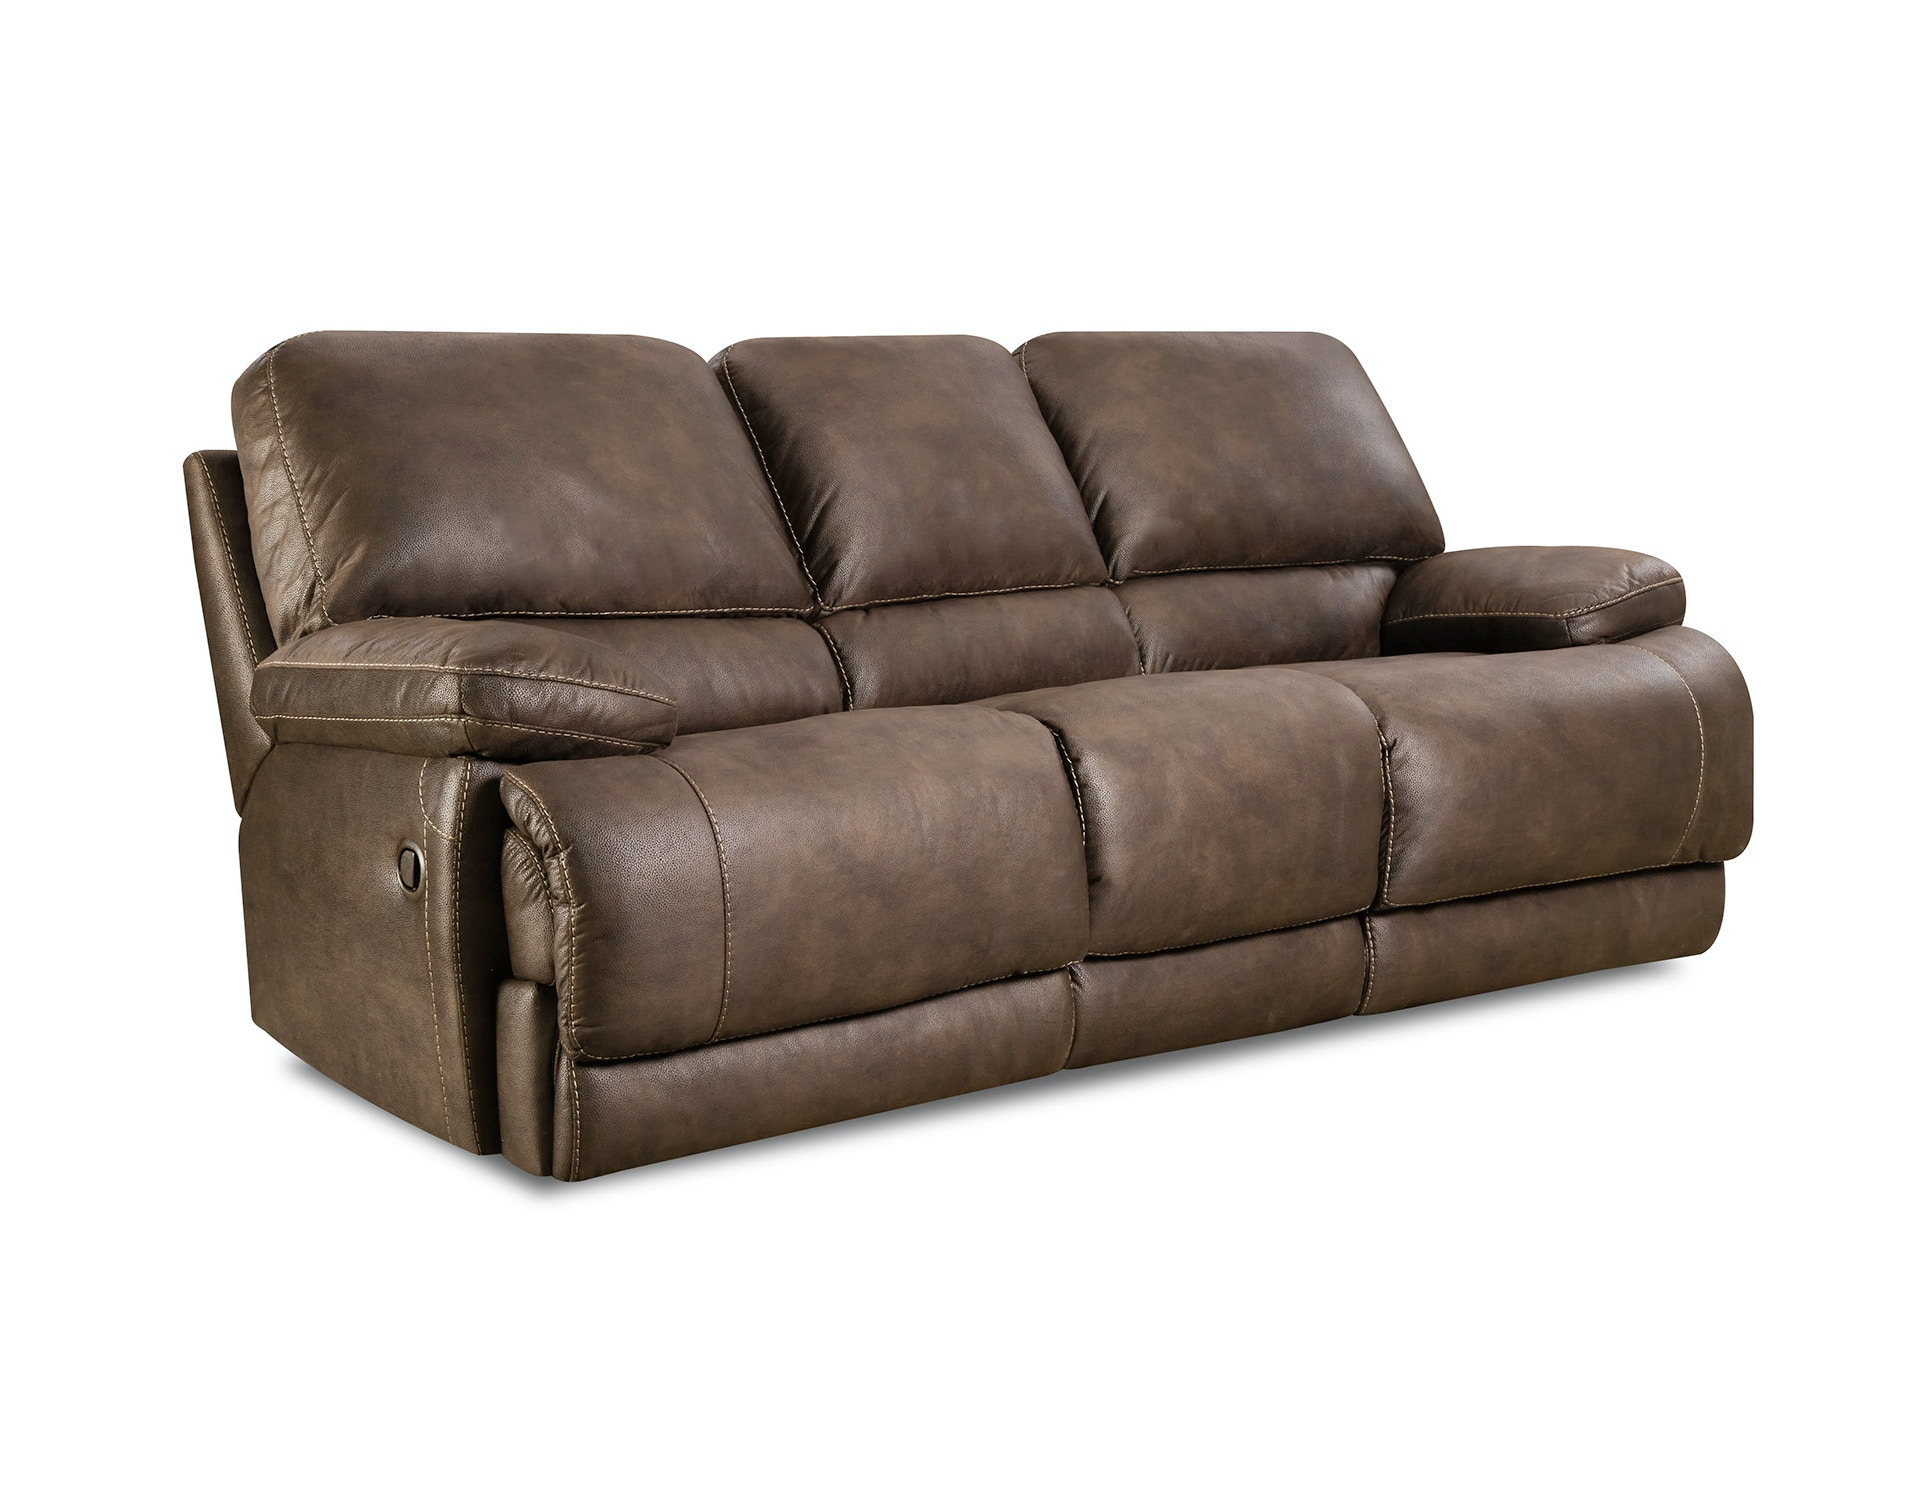 Home Stretch Double Reclining Sofa 147 30 21